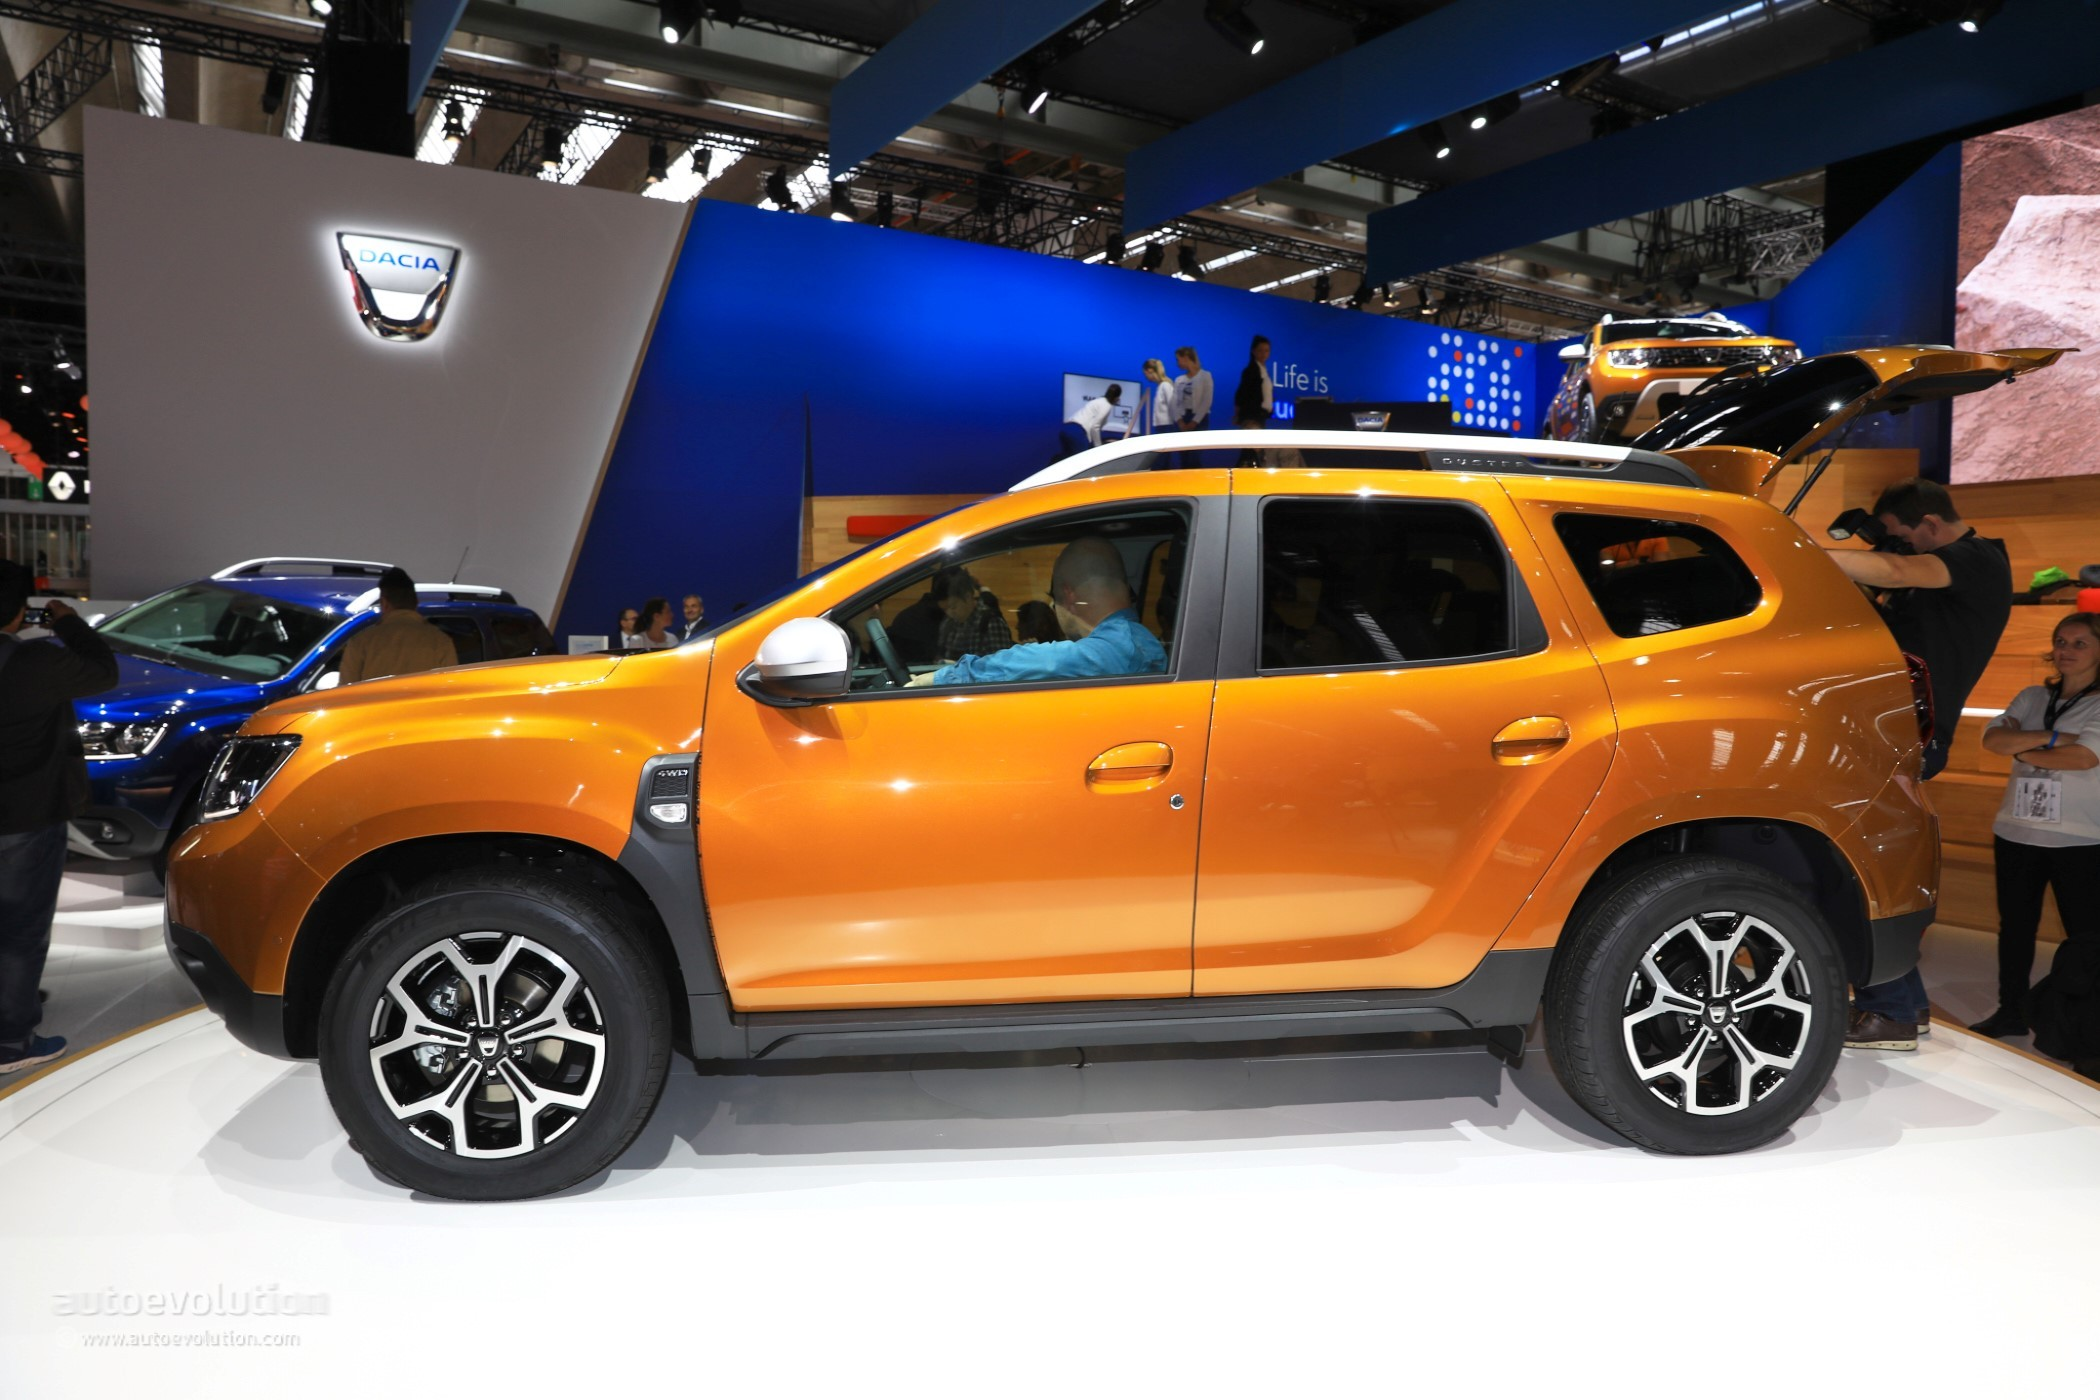 2018 dacia duster basic infotainment system unveiled hint. Black Bedroom Furniture Sets. Home Design Ideas